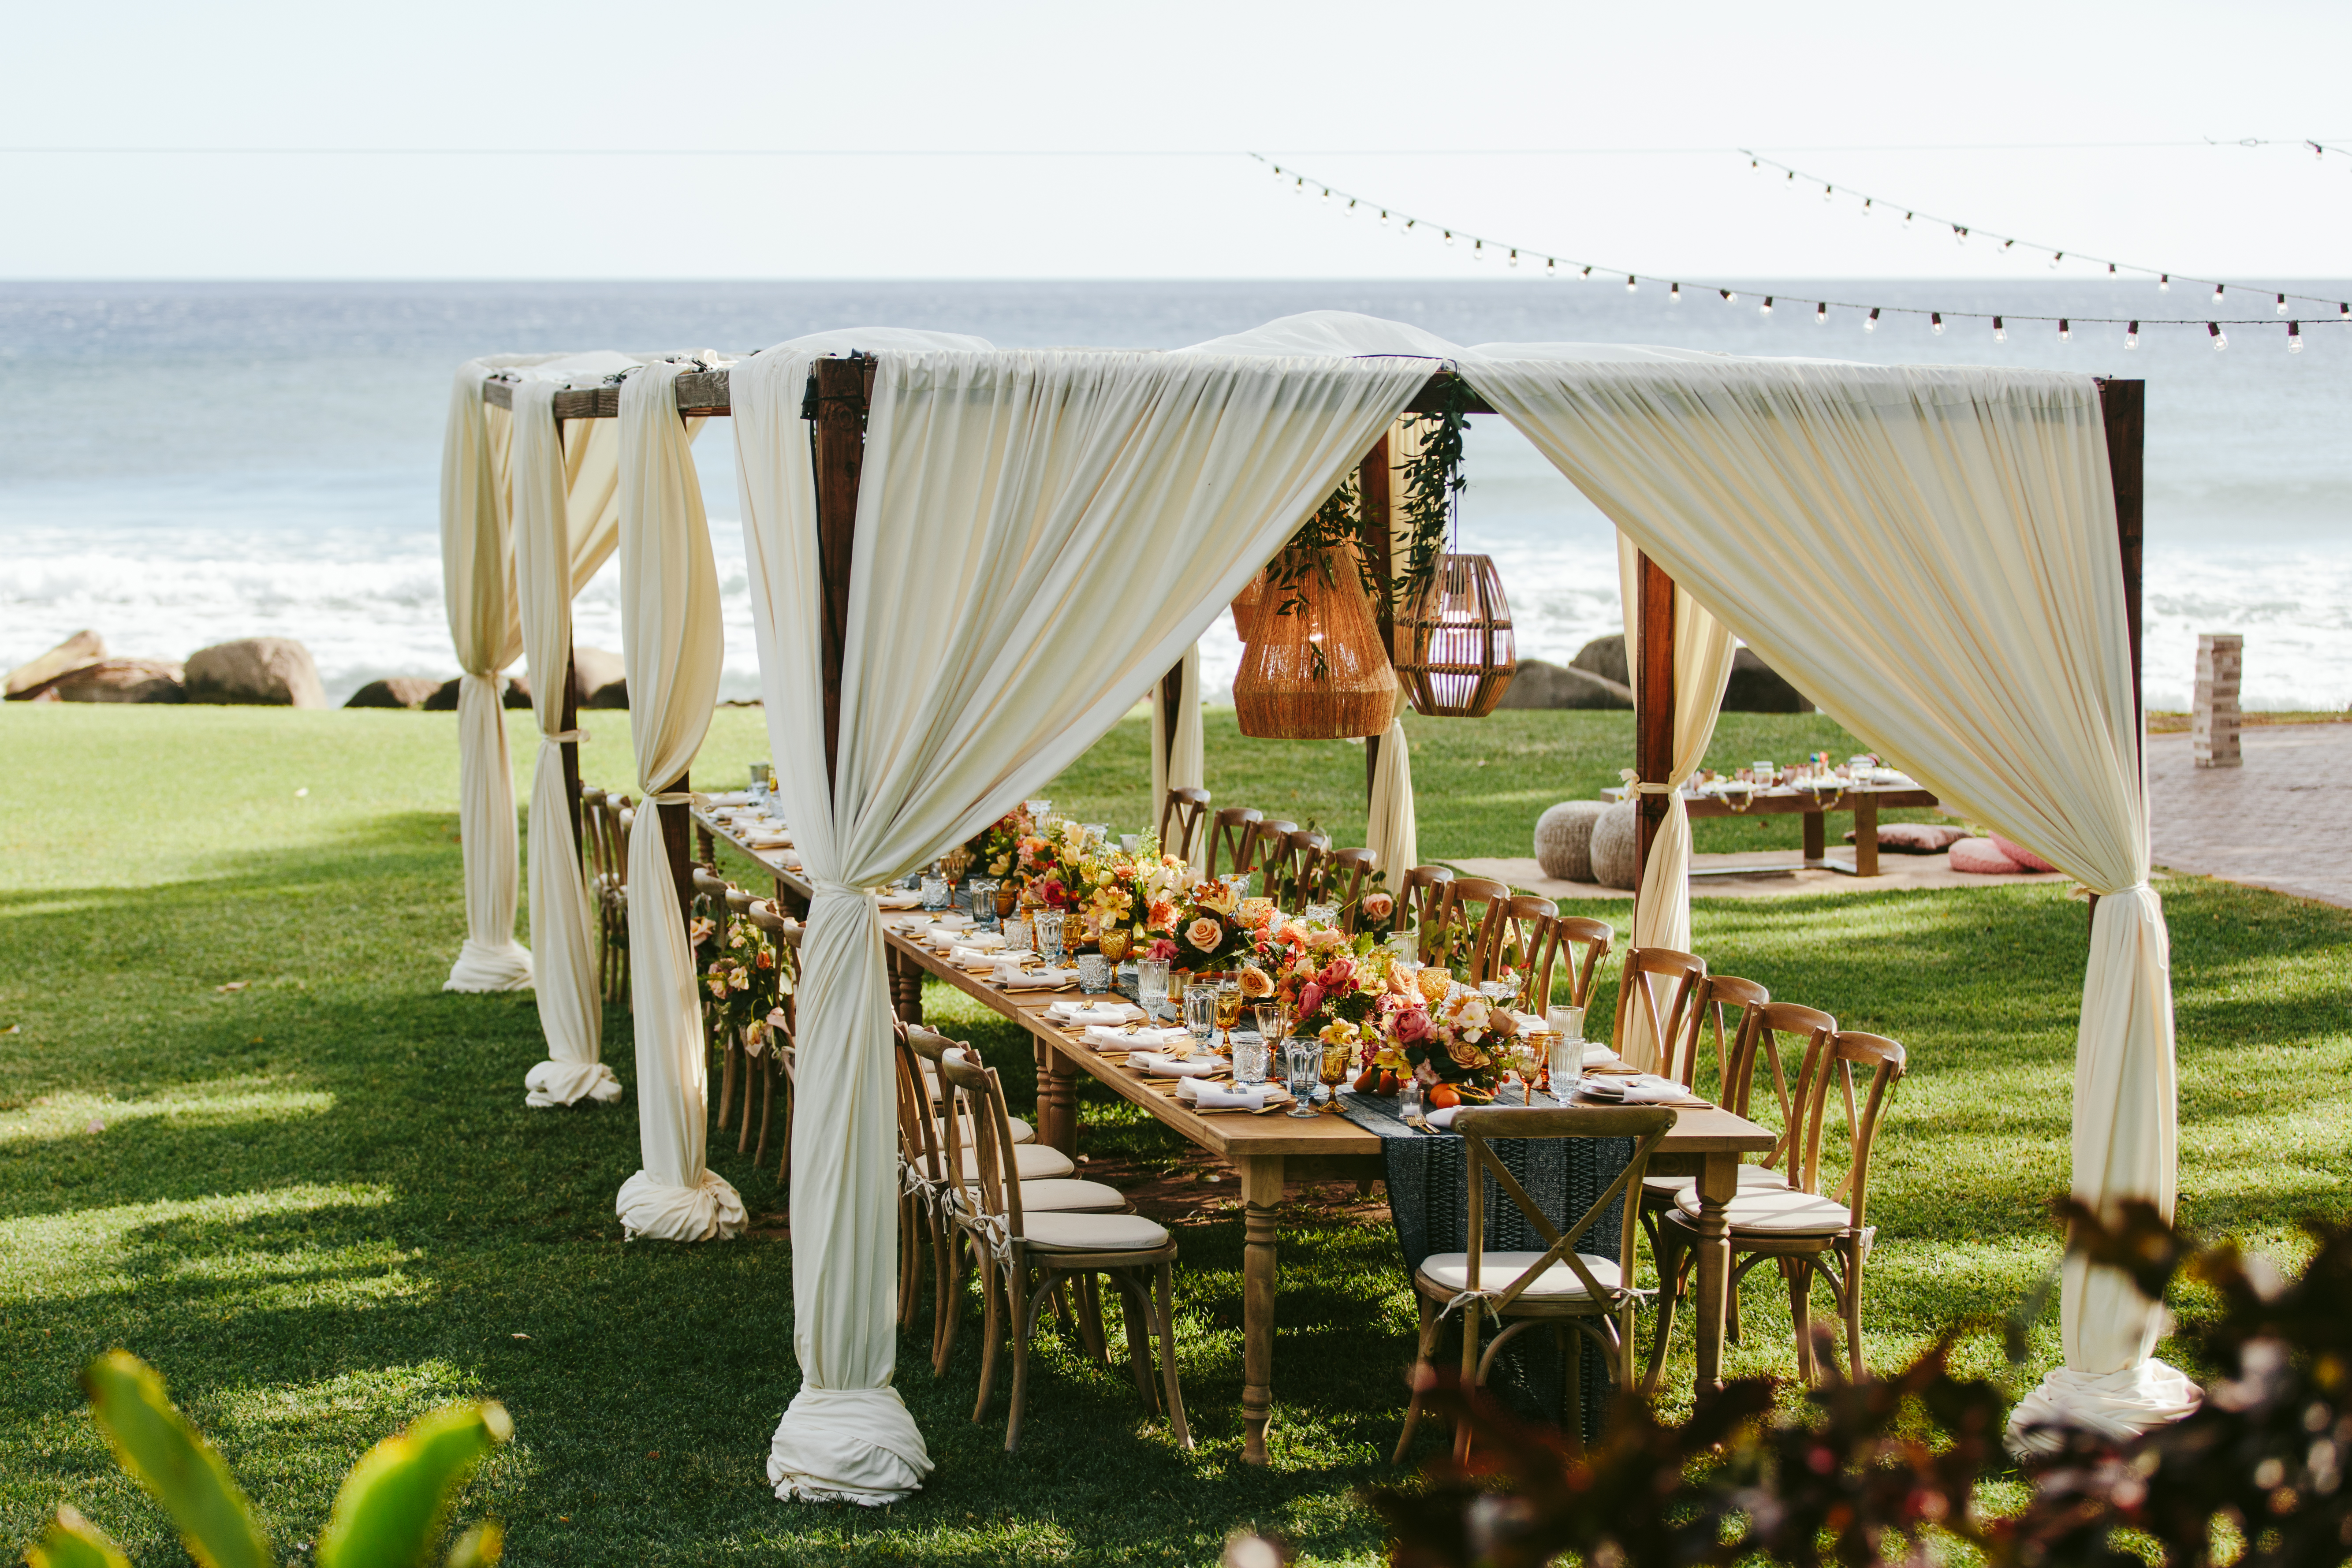 outdoor wedding reception setup with overhead canopy